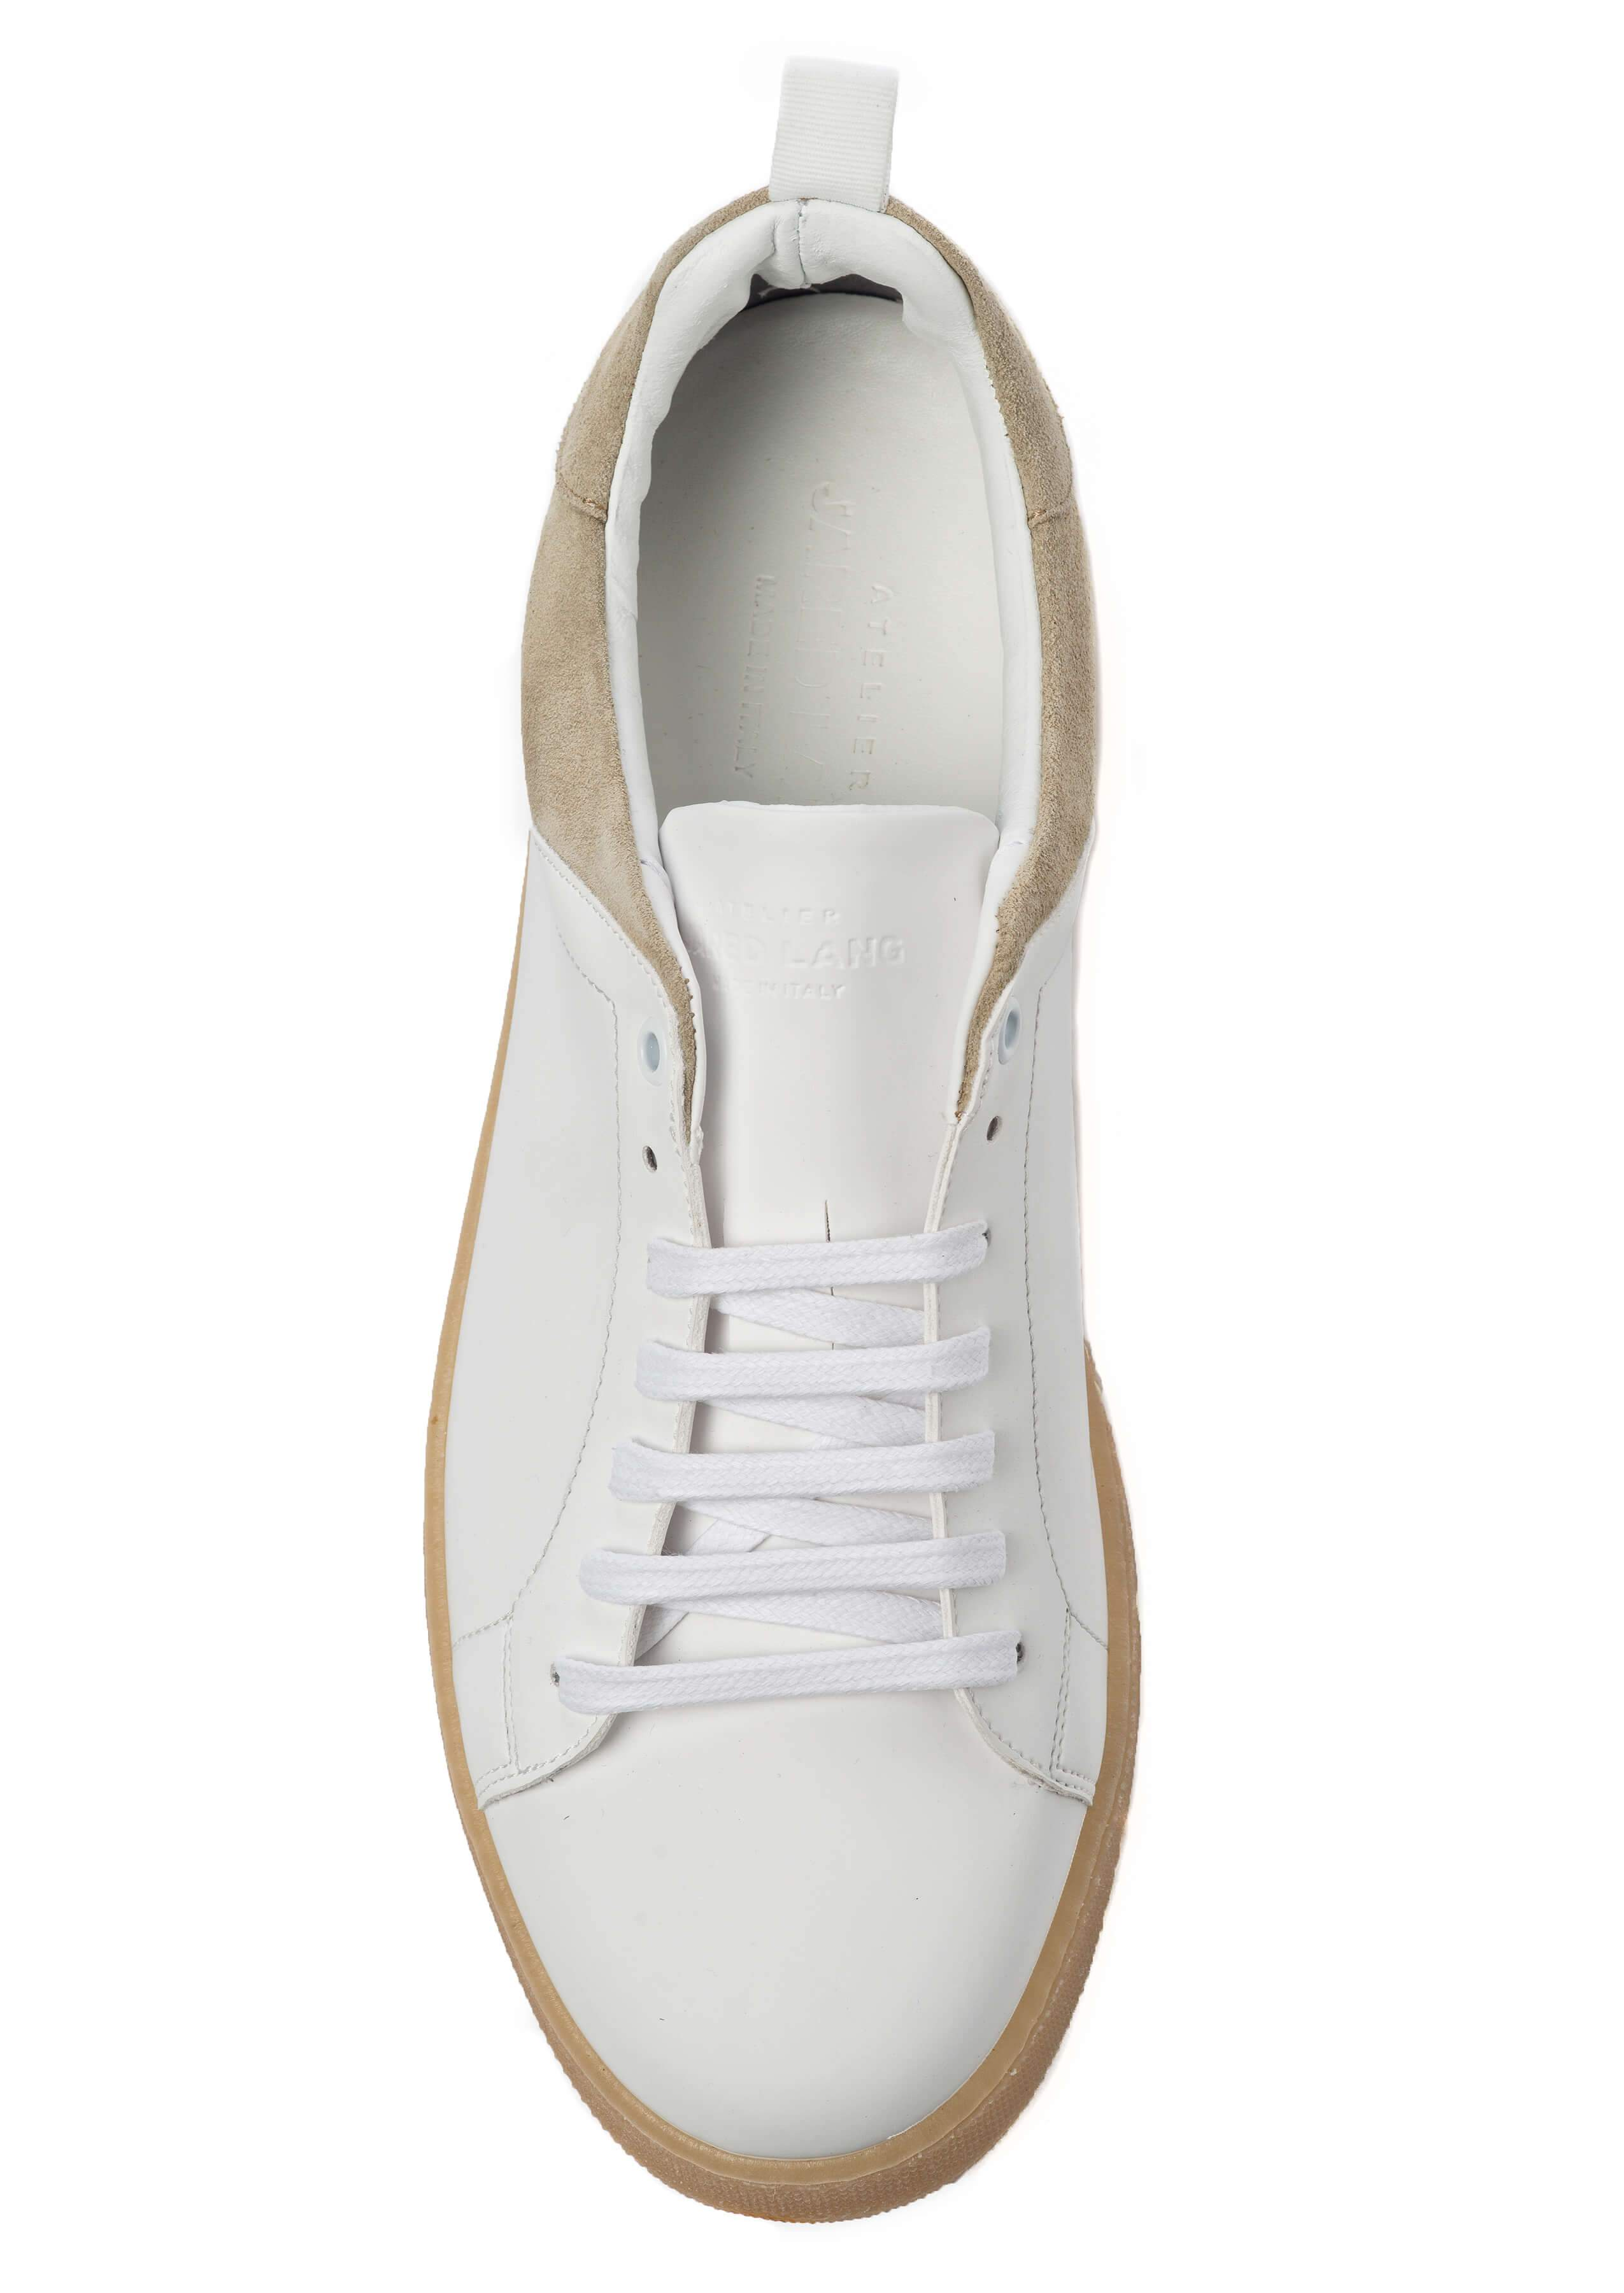 White Beige Sneakers for Men - Top 3839-WB - Jared Lang